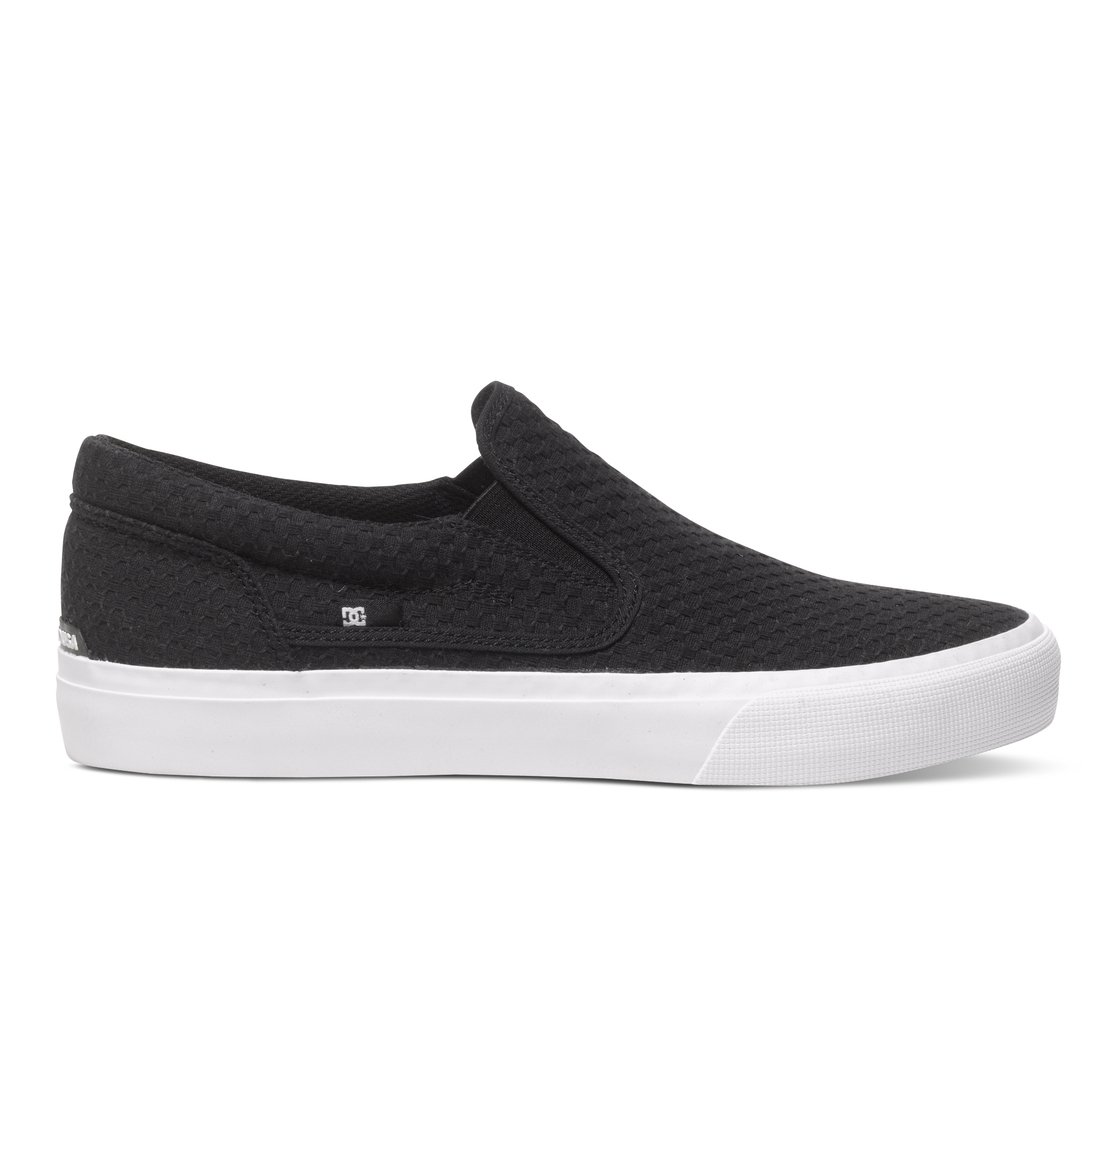 Baskets basses DC shoes Trase slip on